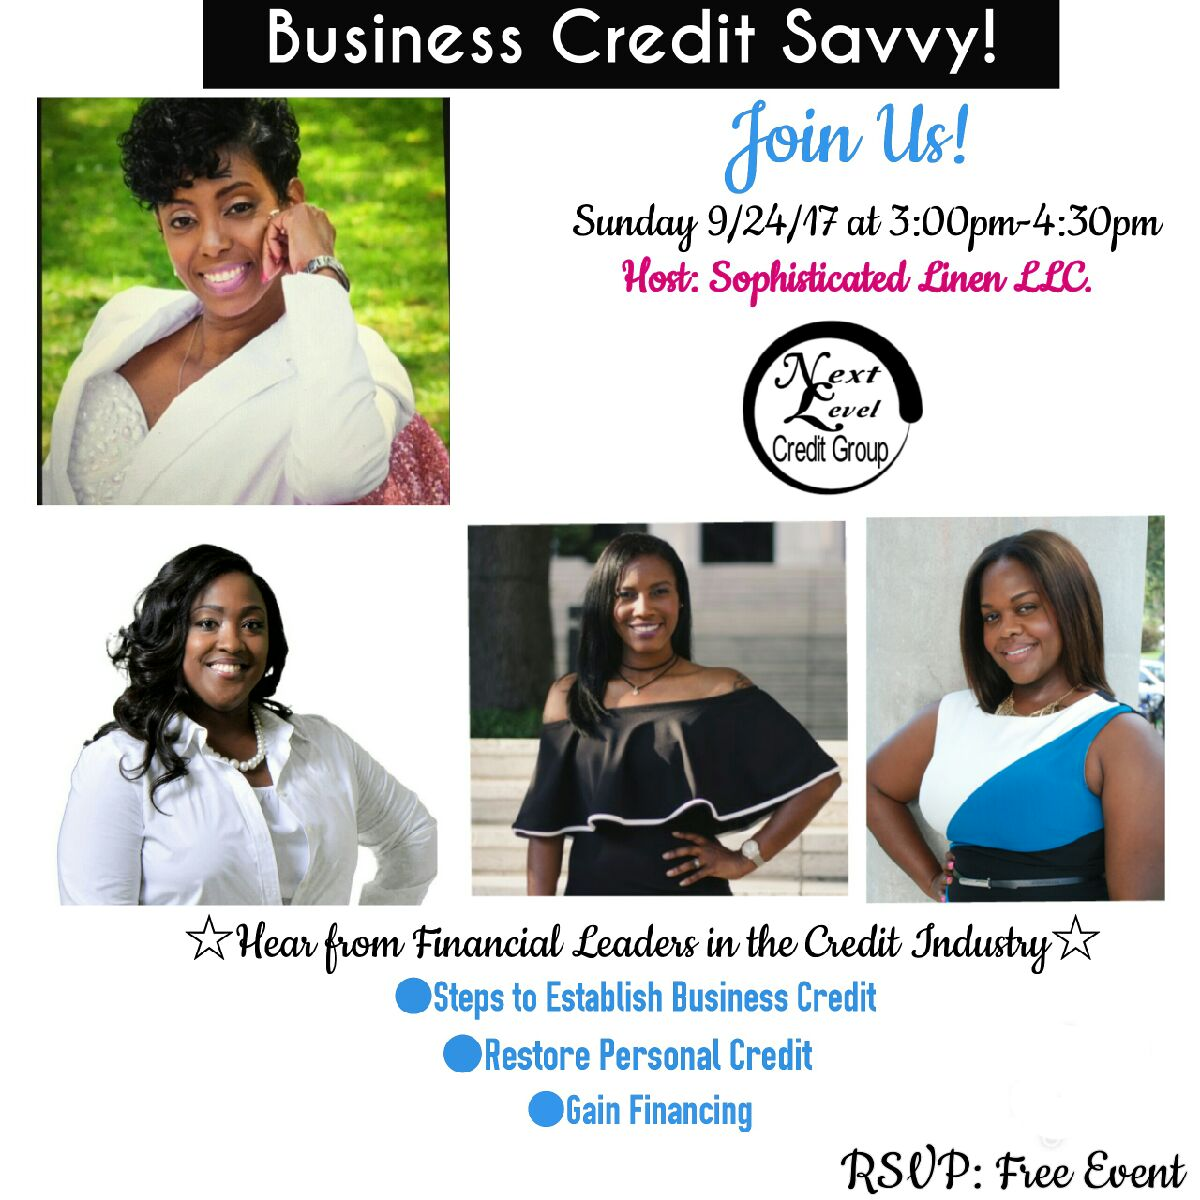 Business Credit Savvy